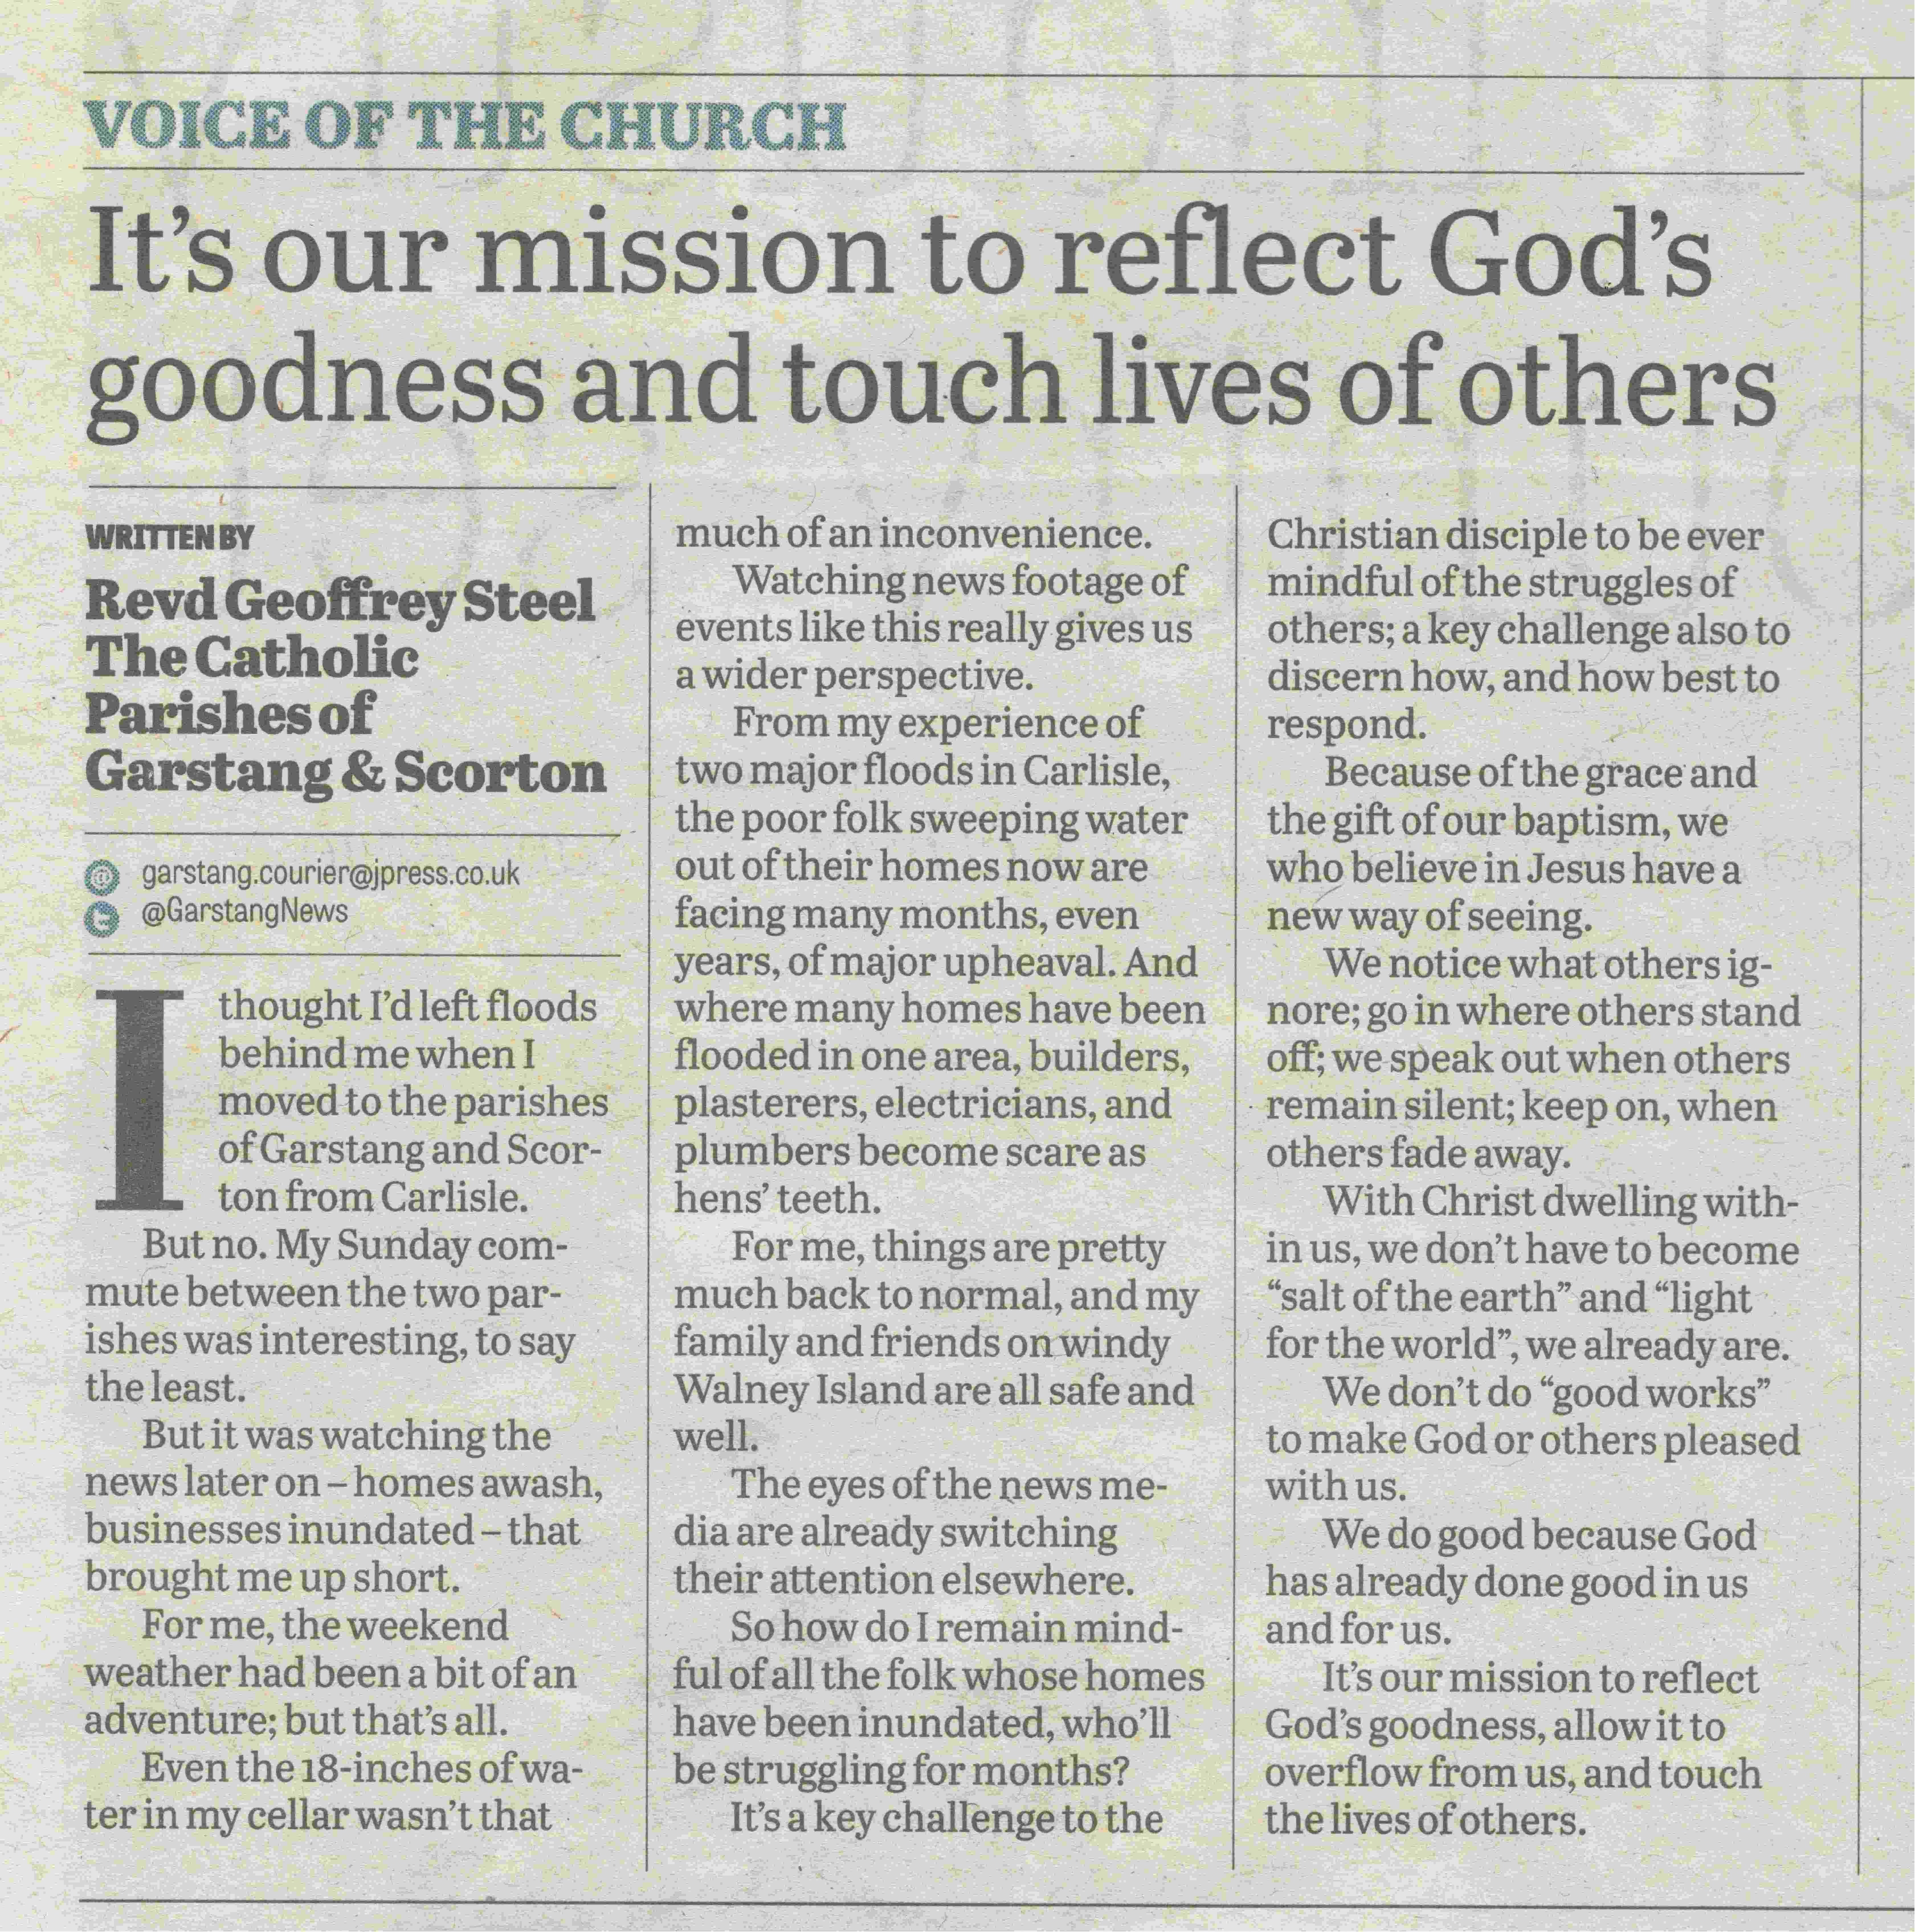 Reflect God's goodness and touch lives of others